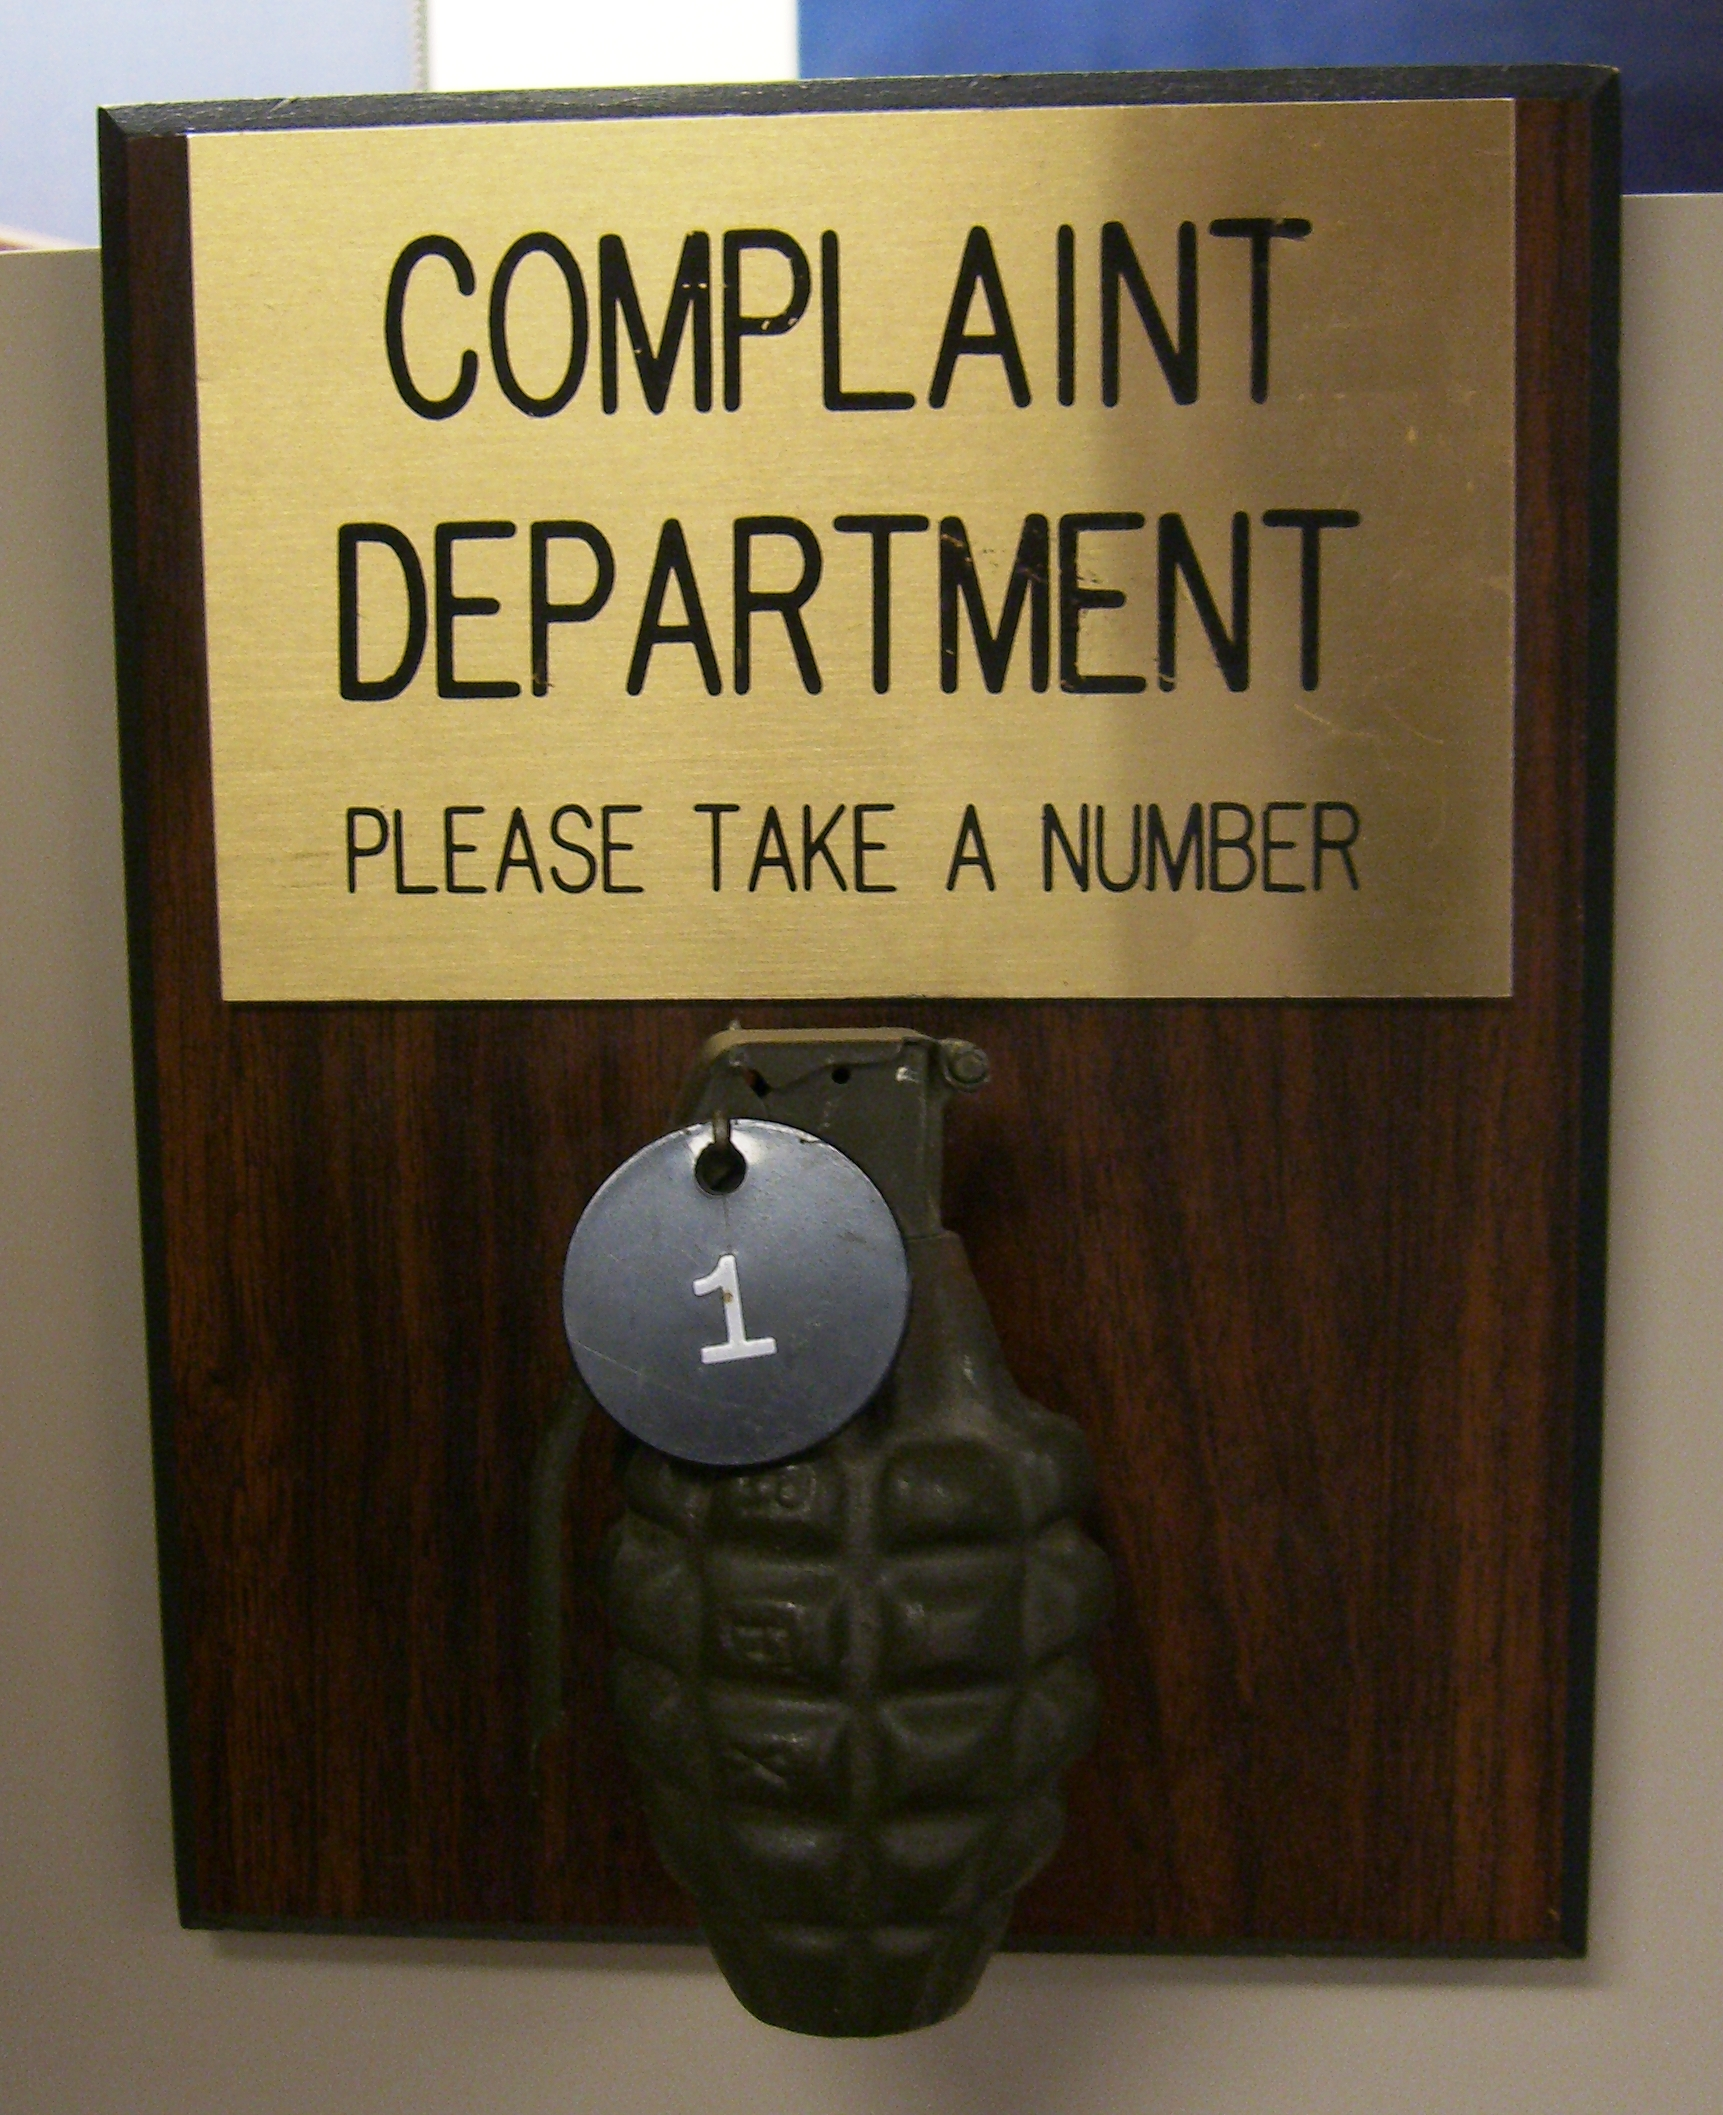 Complaint_Department_Grenade.jpg